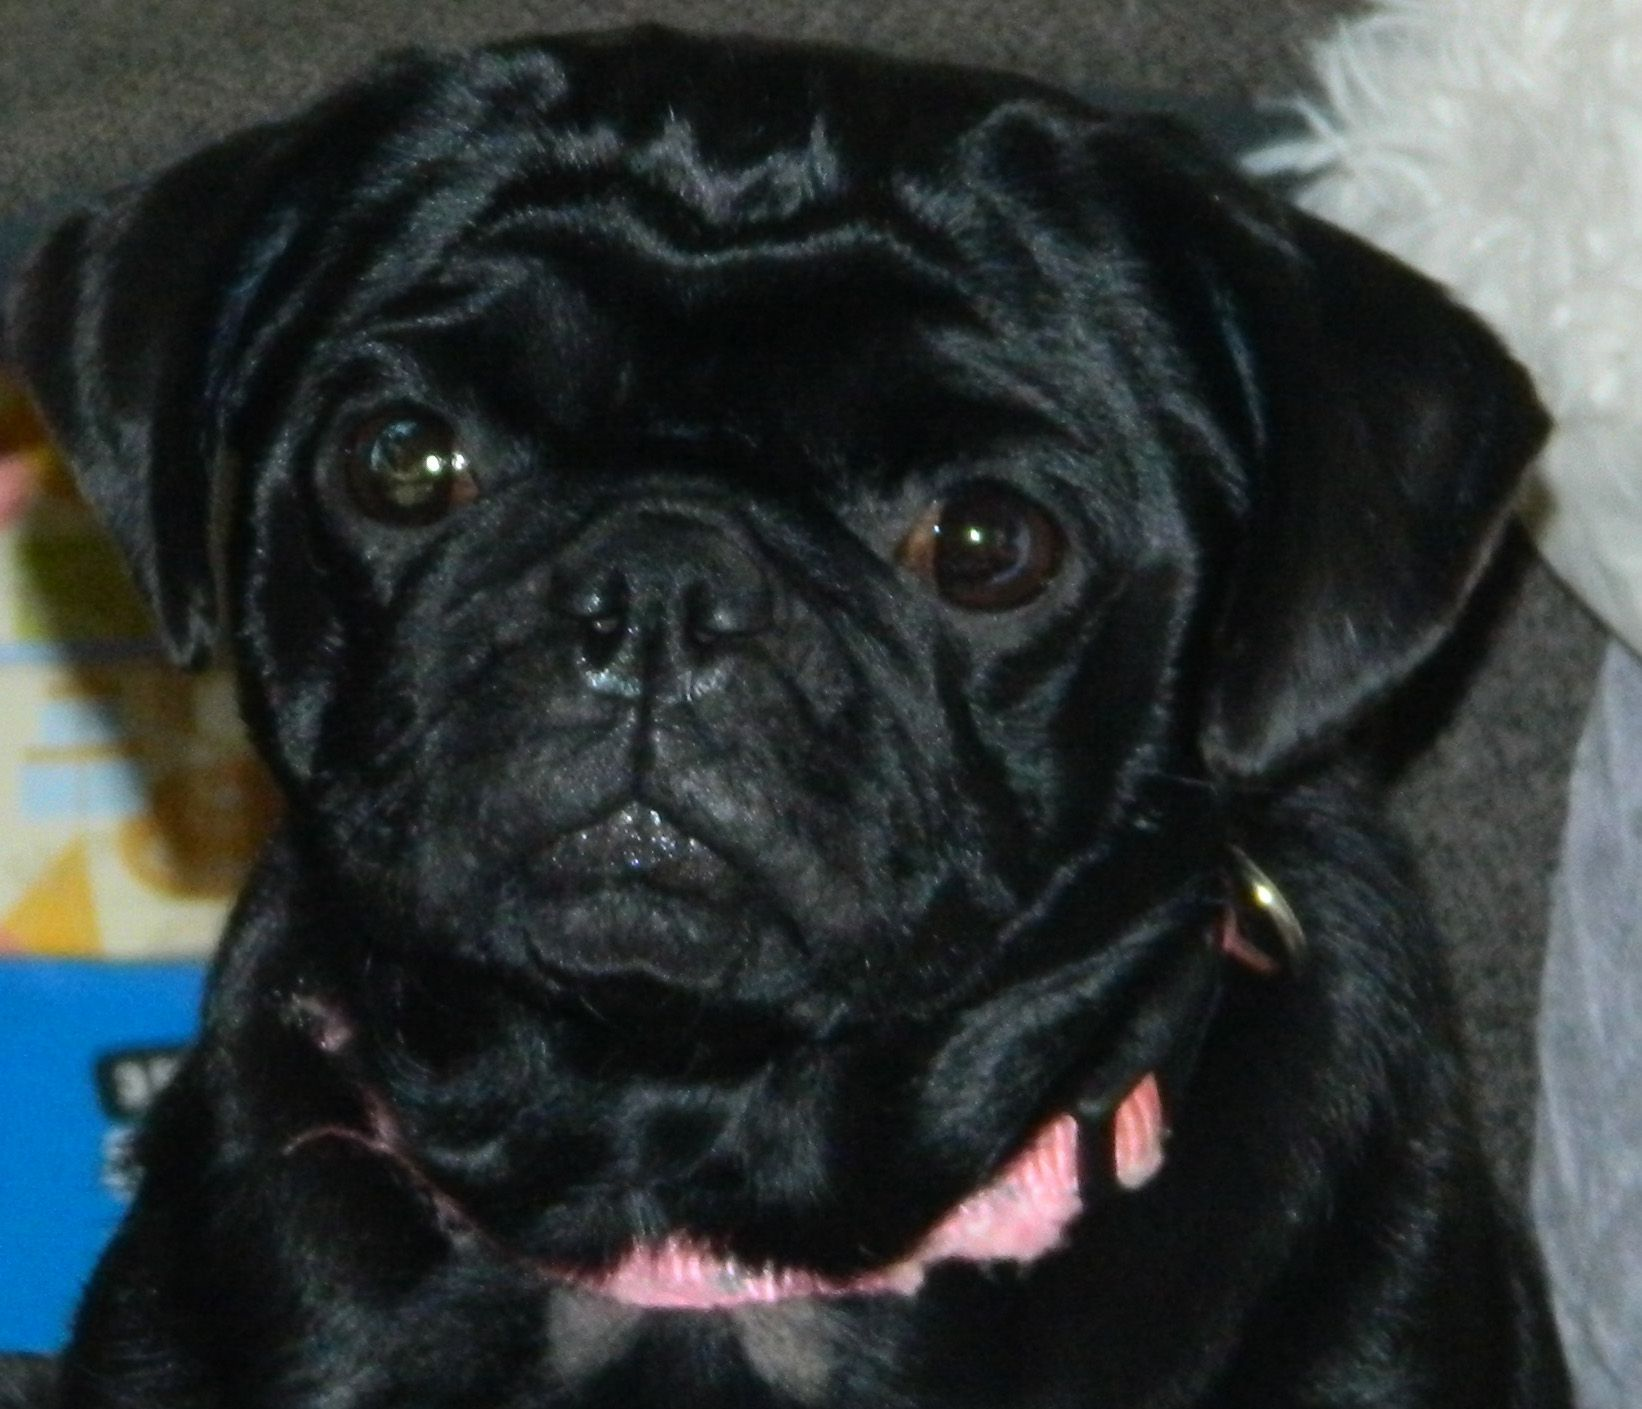 Lost Or Stolen Reward Female Black Pug Her Name Is Winni And